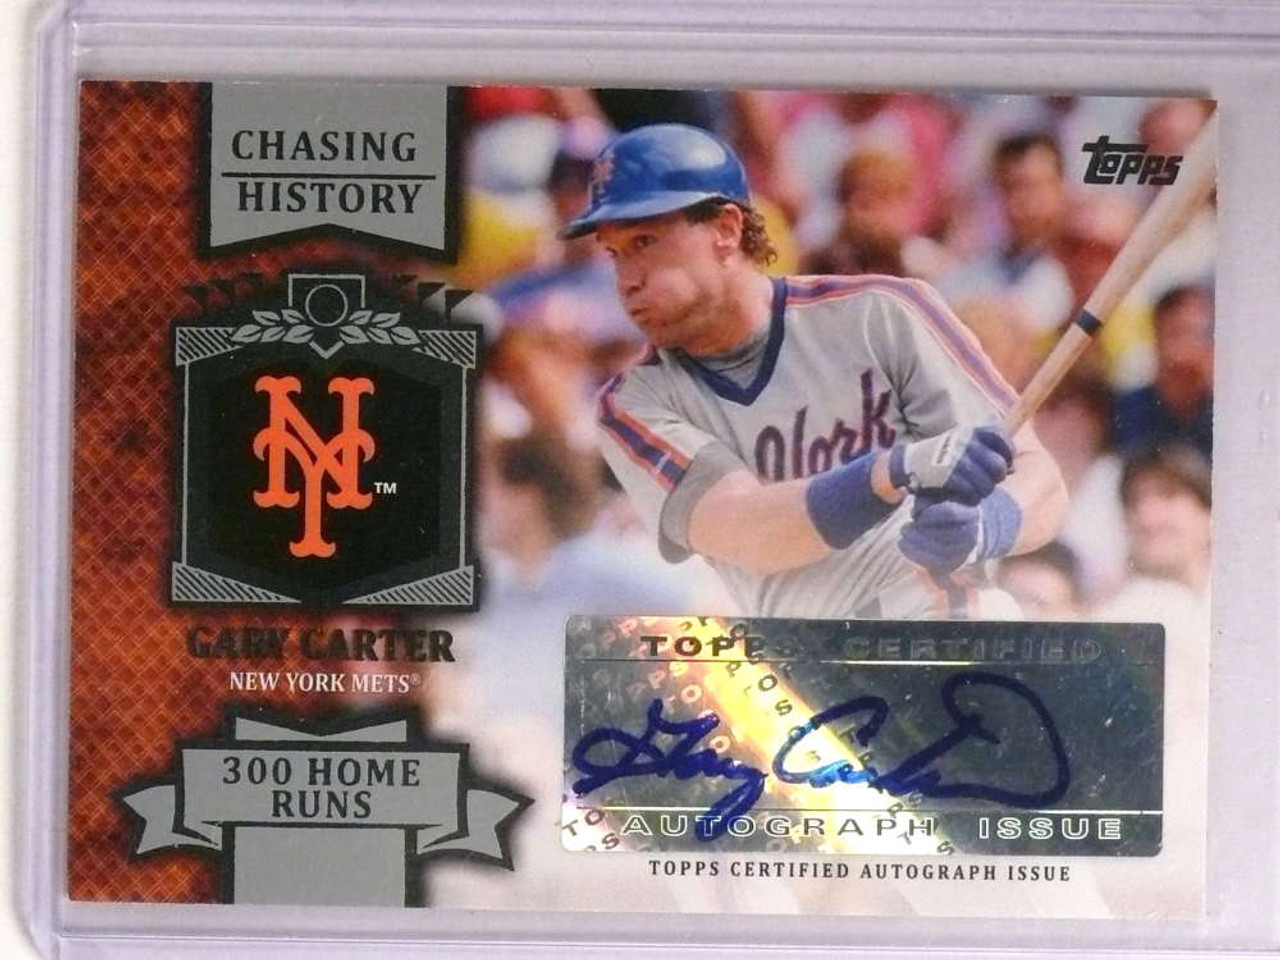 2013 Topps Chasing History Gary Carter Autograph Auto Cha Gc 72530